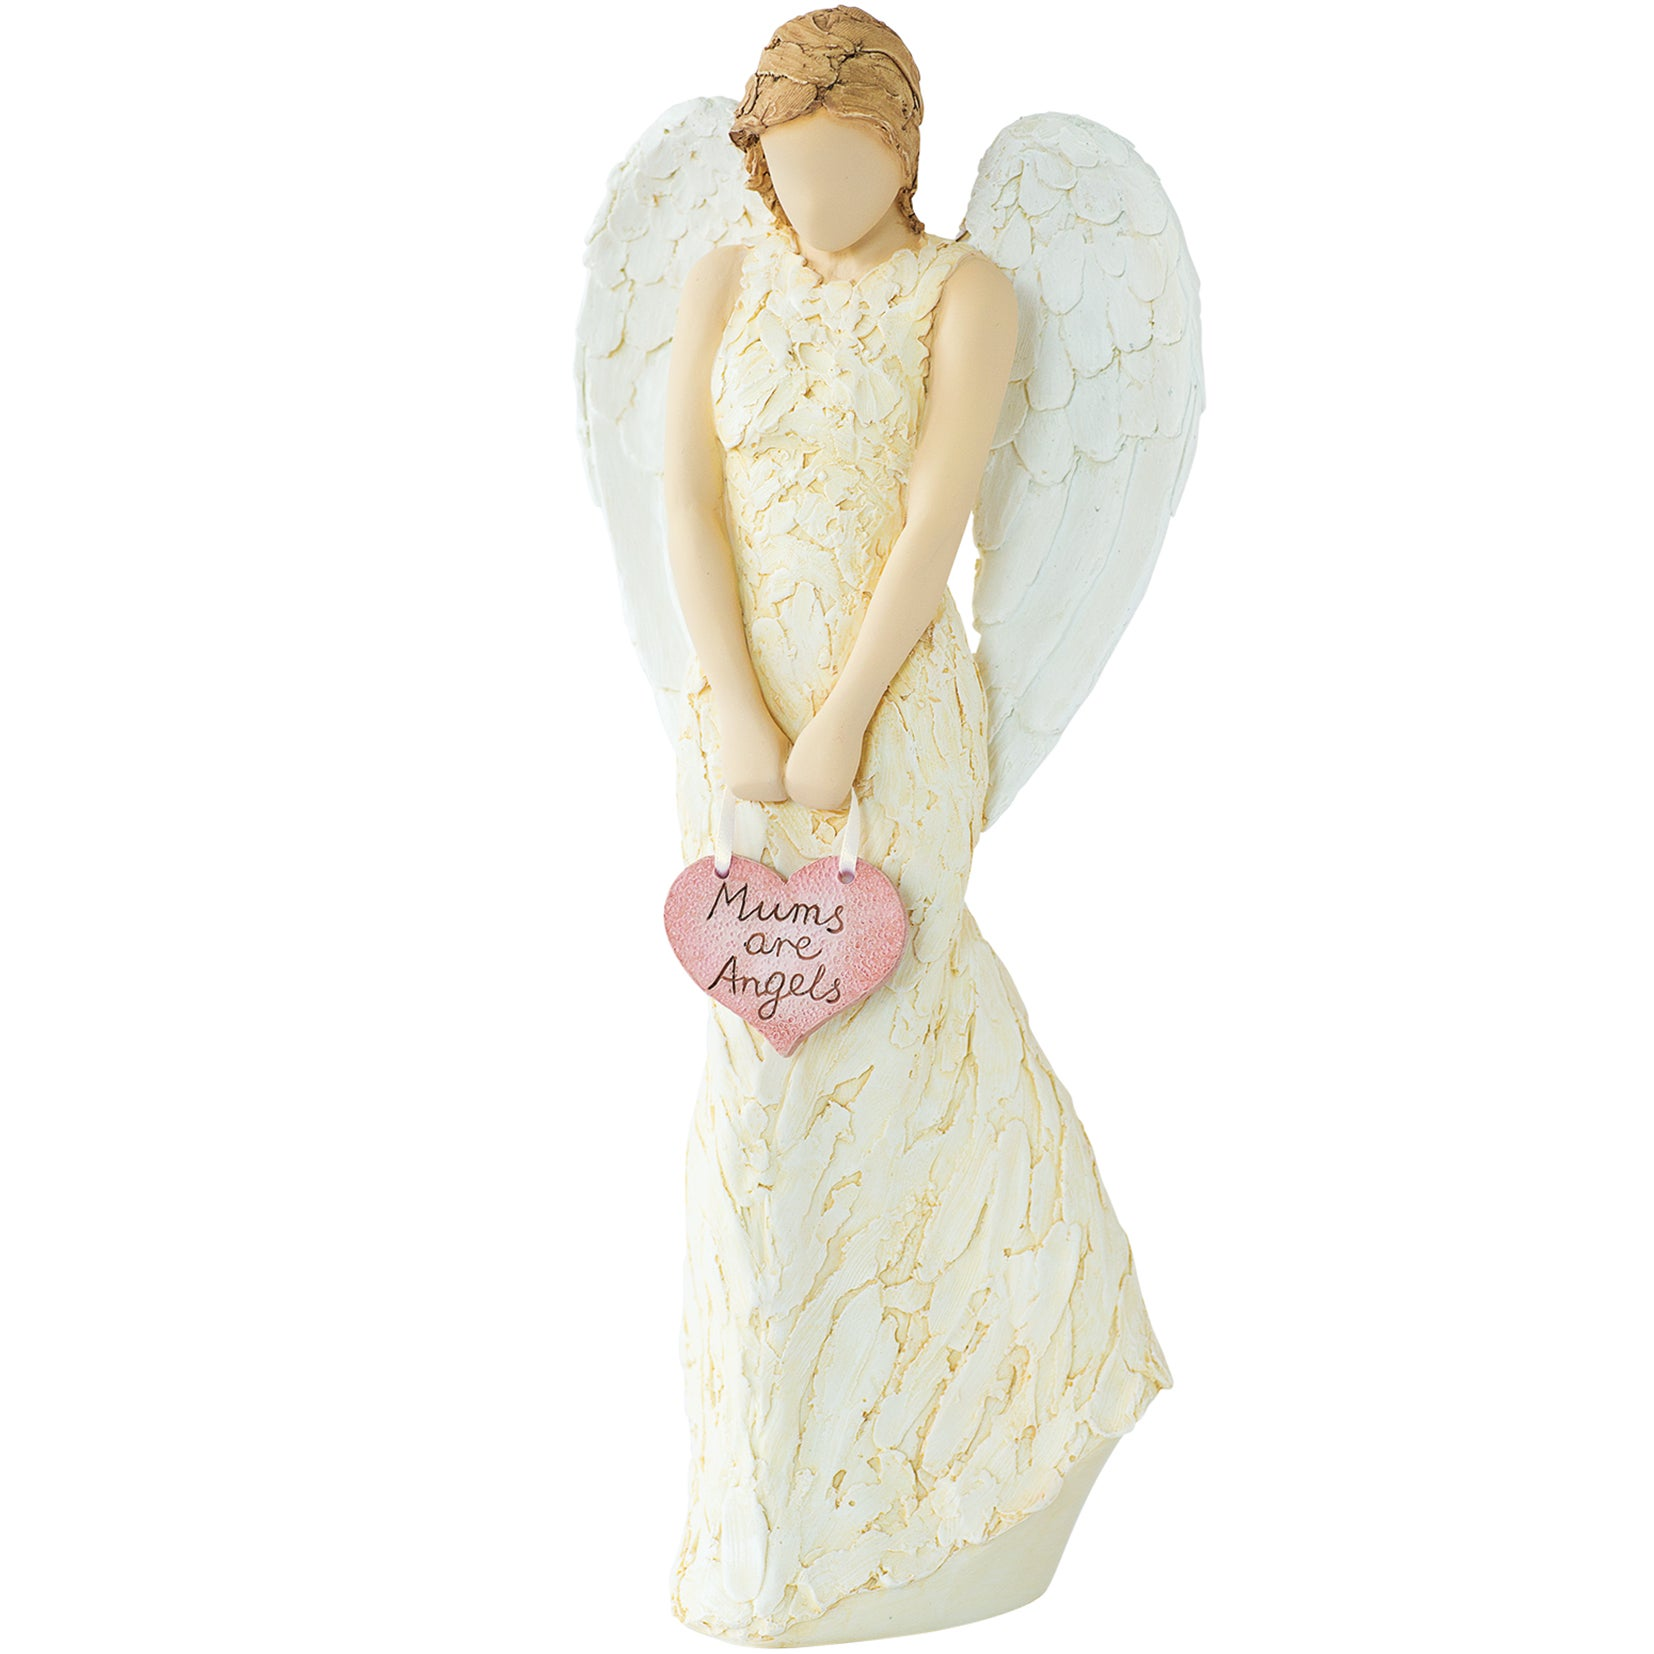 More than Words Figurines Mum's are Angel's